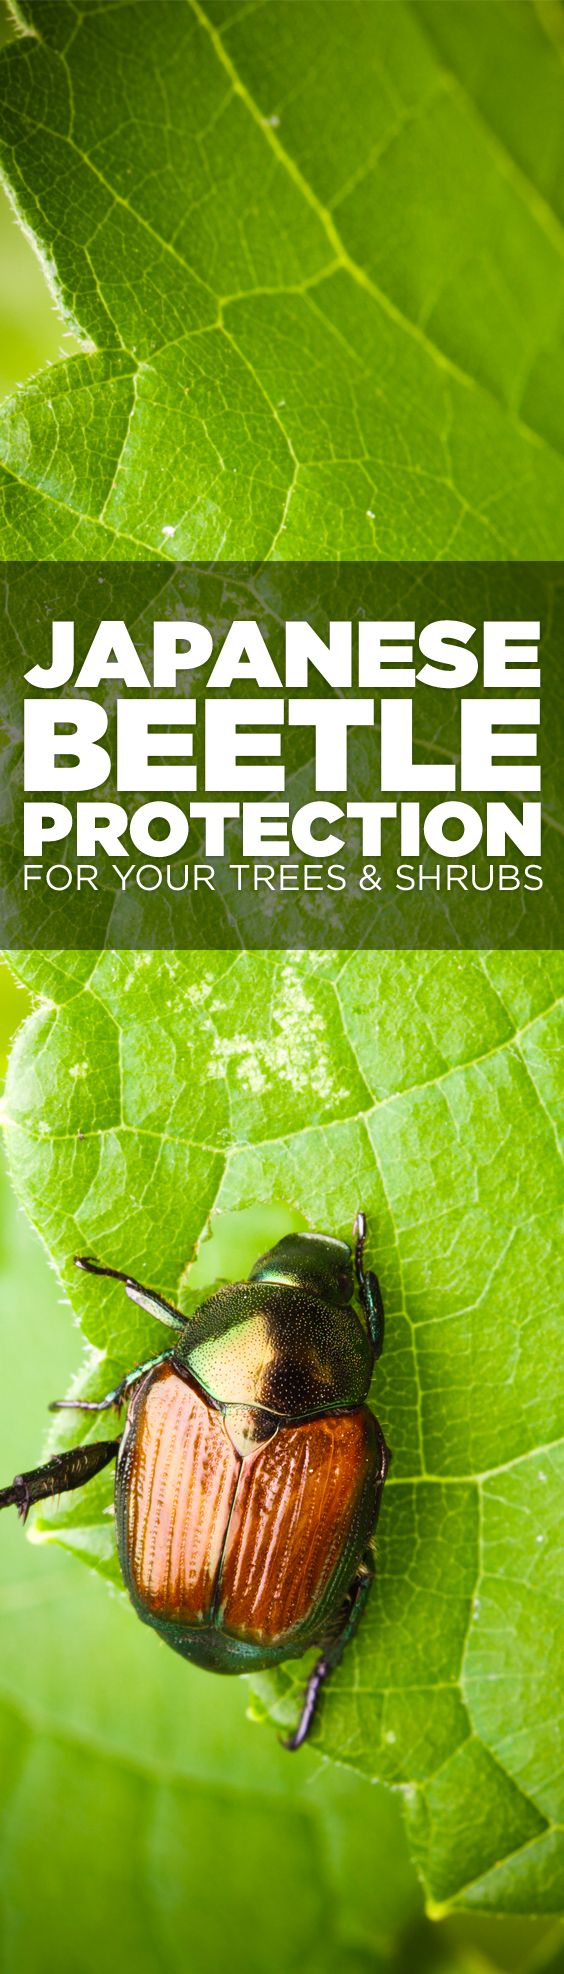 Great info on how to keep Japanese Beetles from ruining your garden! #Gardening